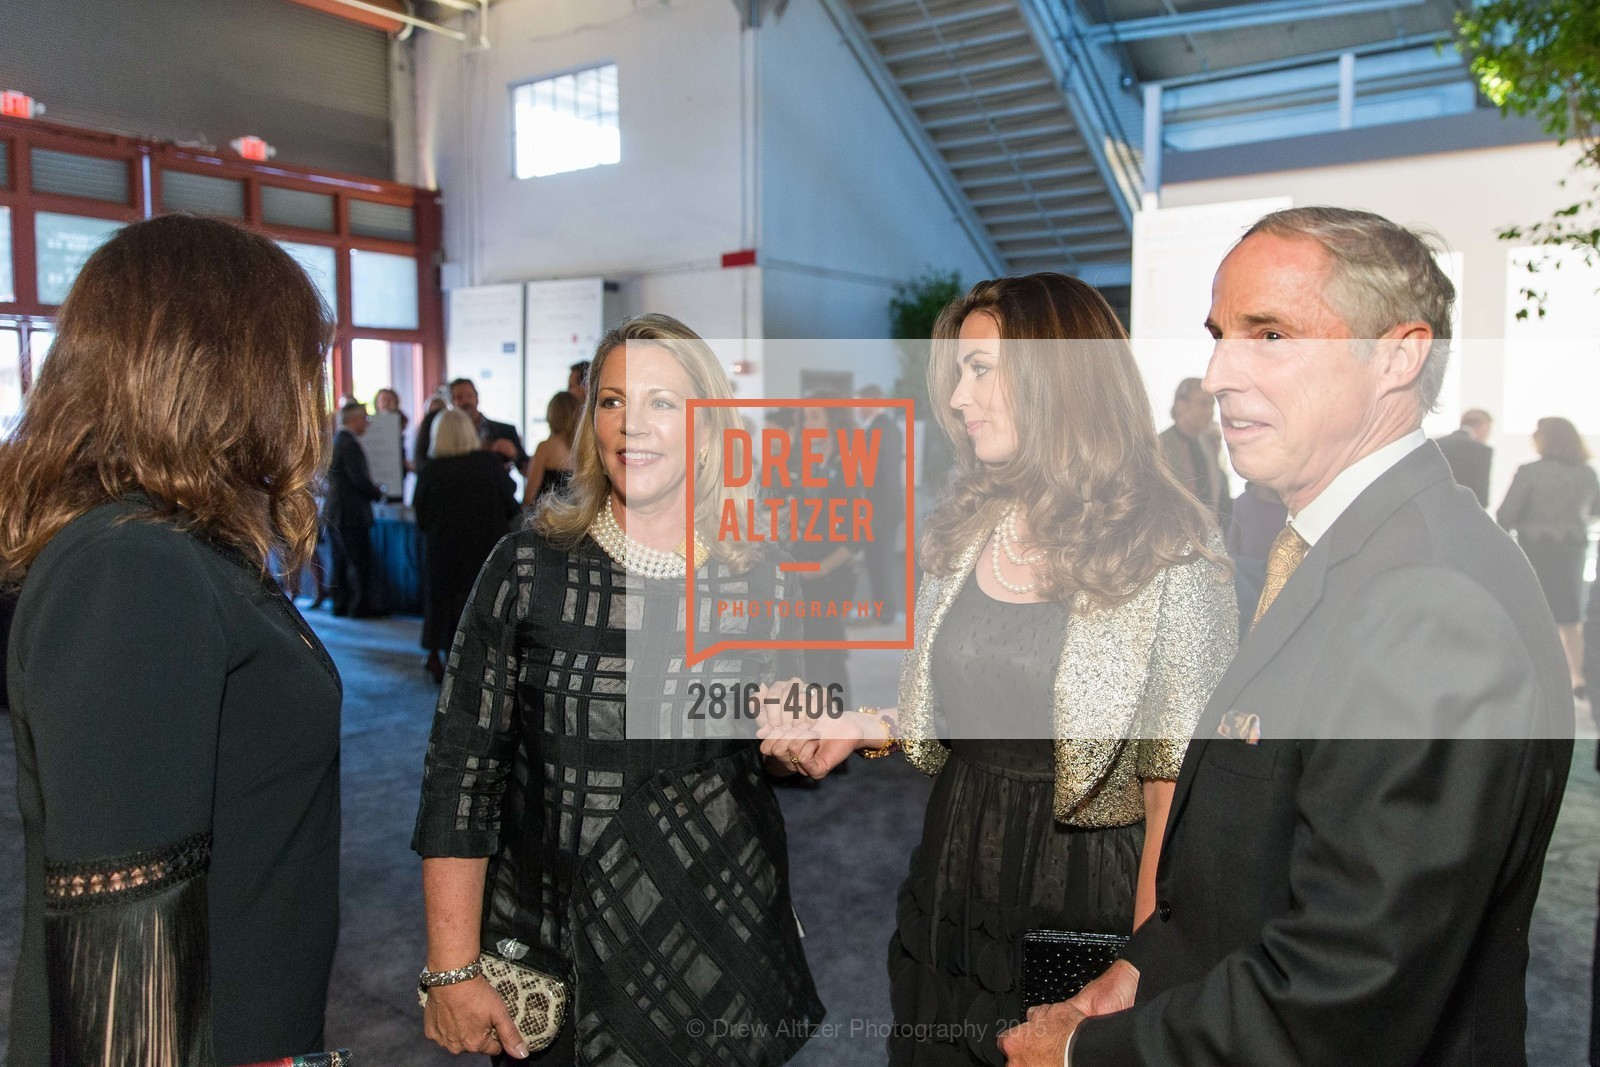 Suzanne Tucker, Hatley McMicking, Tim Marks, The San Francisco Fall Antiques Show, Festival Pavilion, Fort Mason, October 21st, 2015,Drew Altizer, Drew Altizer Photography, full-service event agency, private events, San Francisco photographer, photographer California